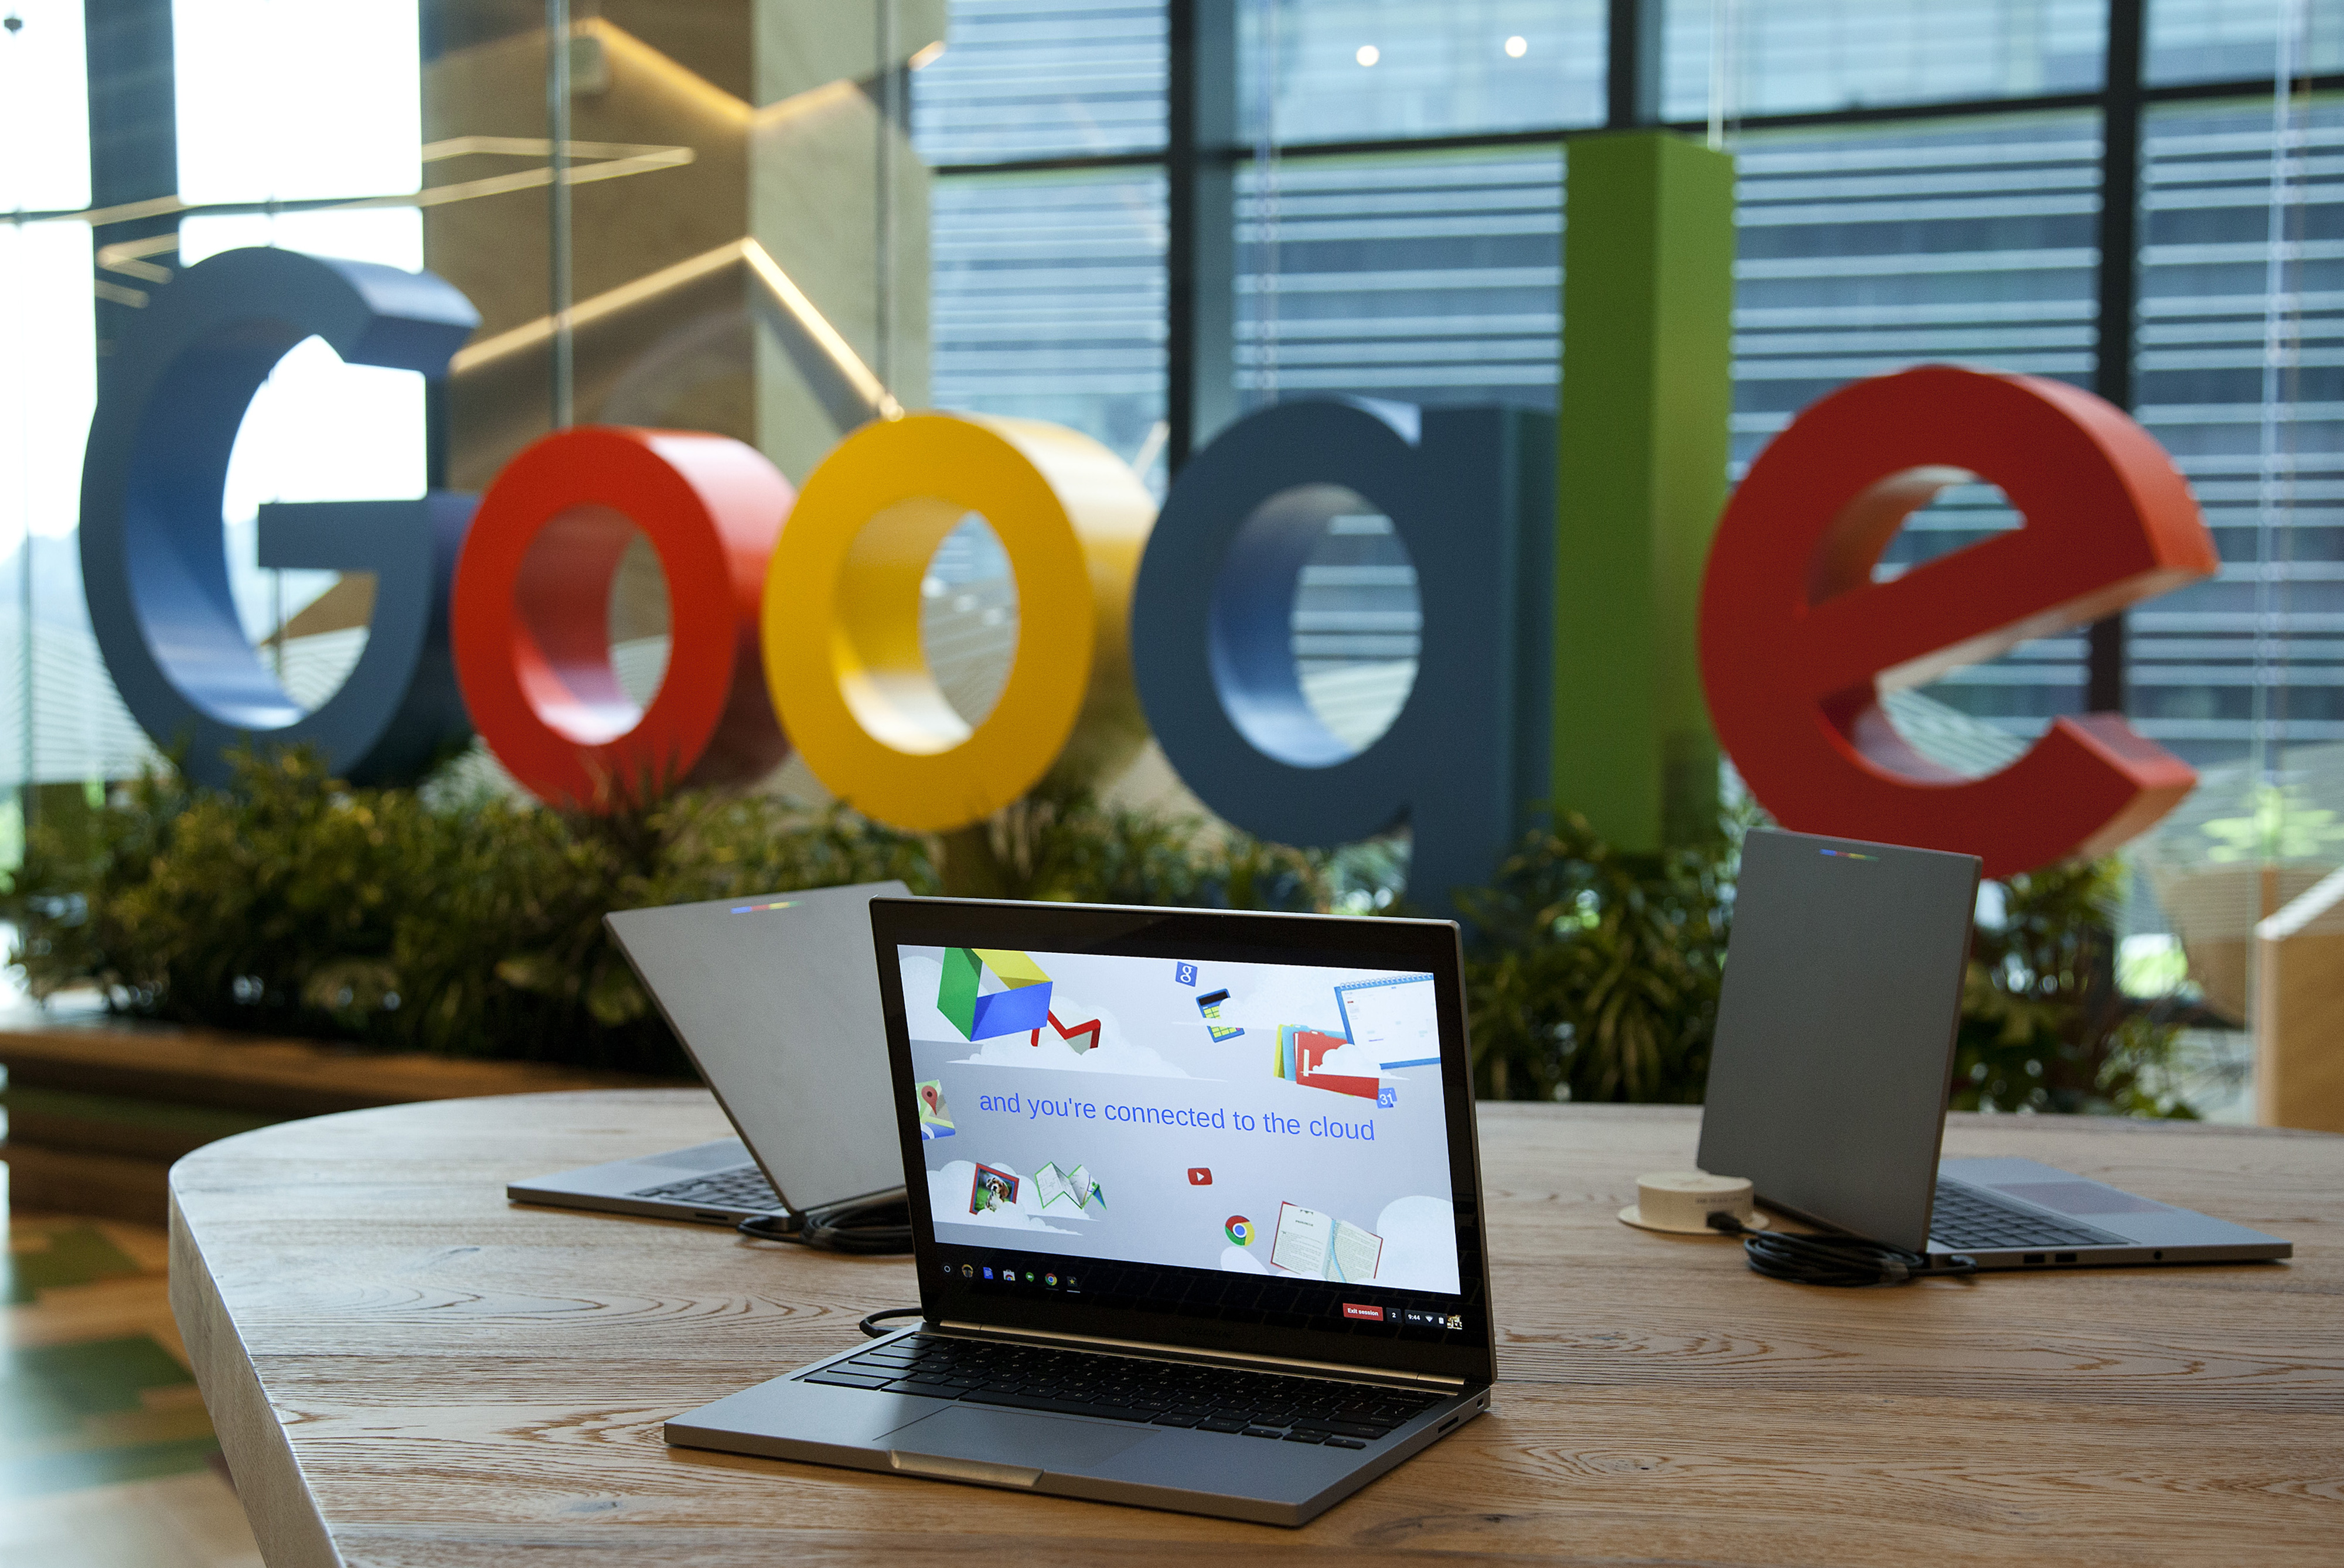 google claiming to stop reading your gmail emails 2017 images